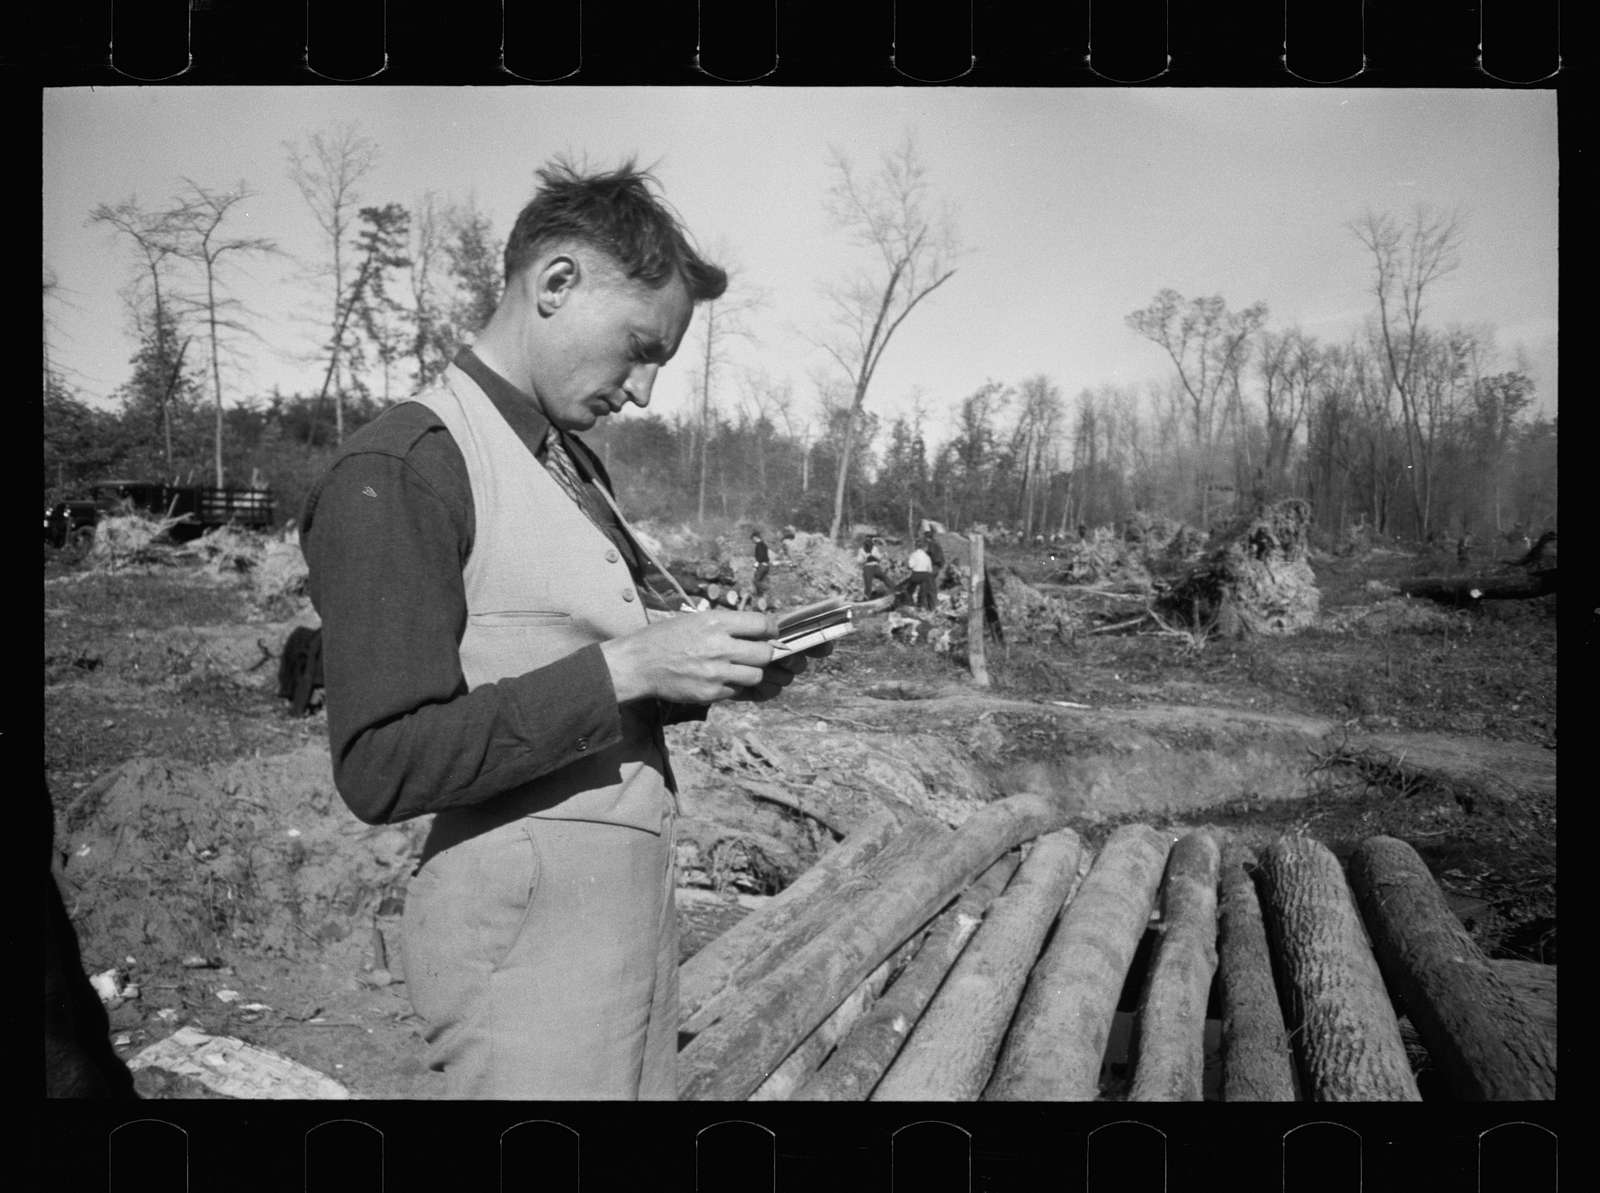 Untitled photo, possibly related to: Bridge building, Prince George's County, Maryland